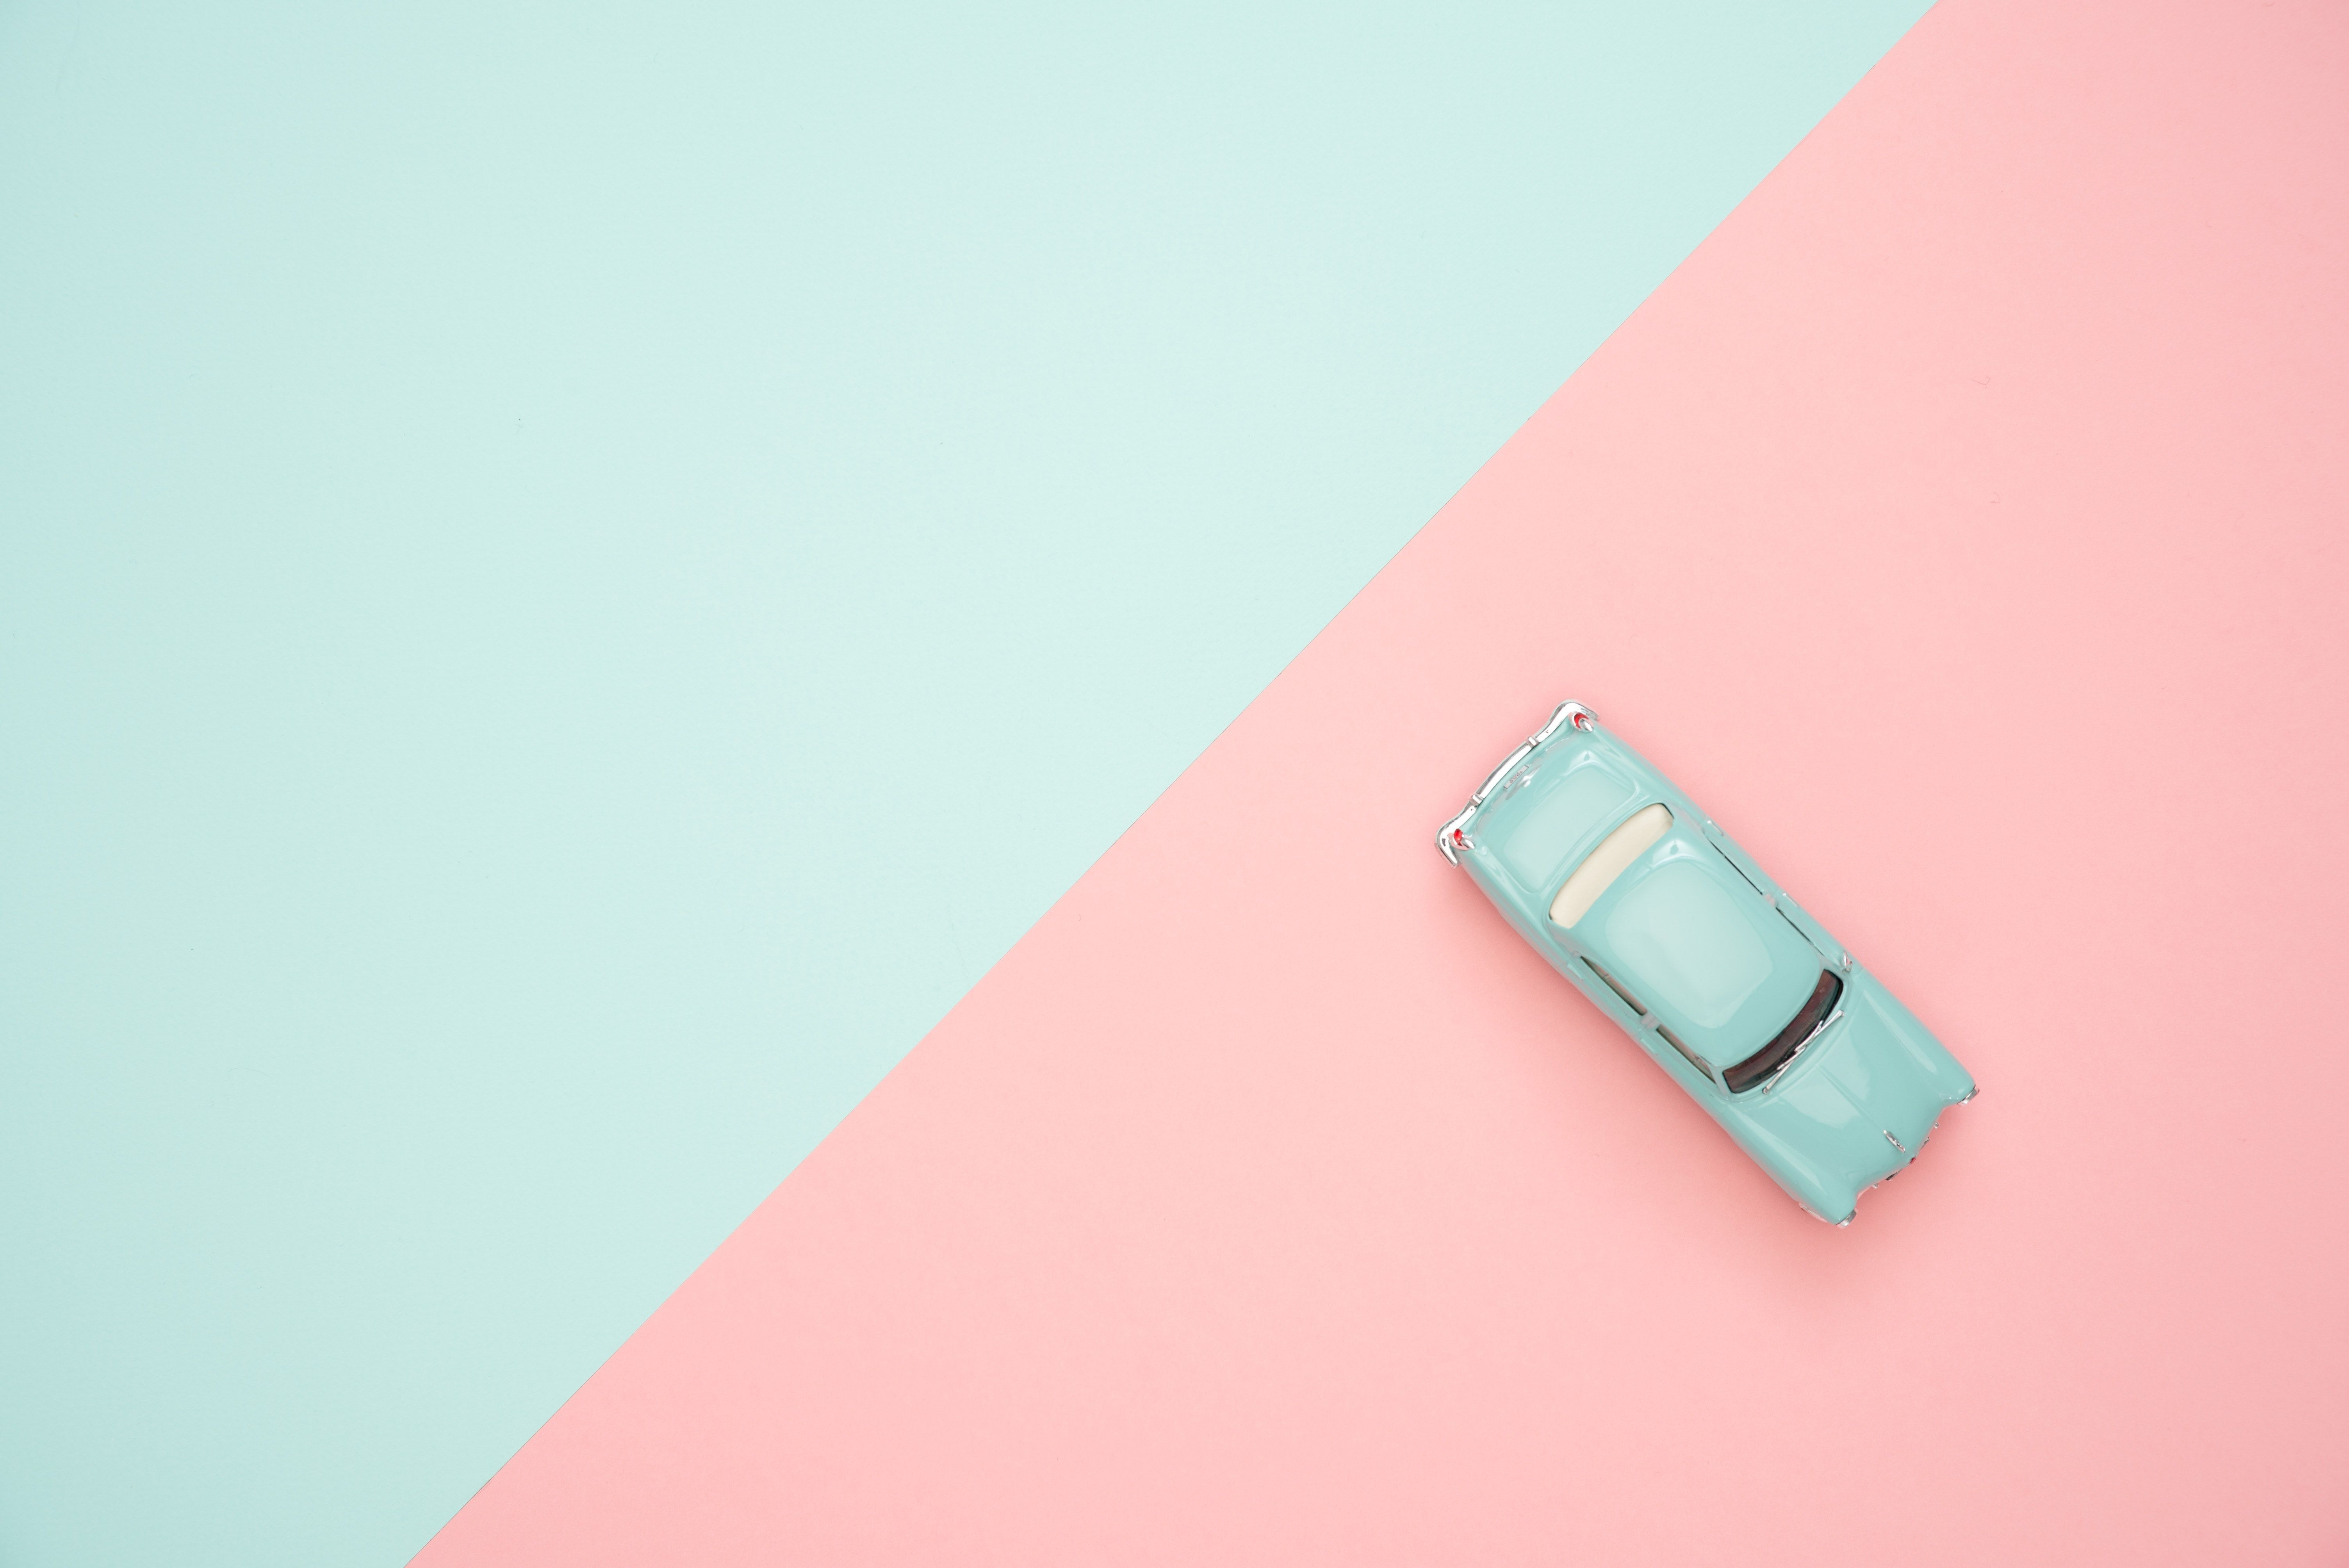 pastel pink aesthetic computer wallpapers